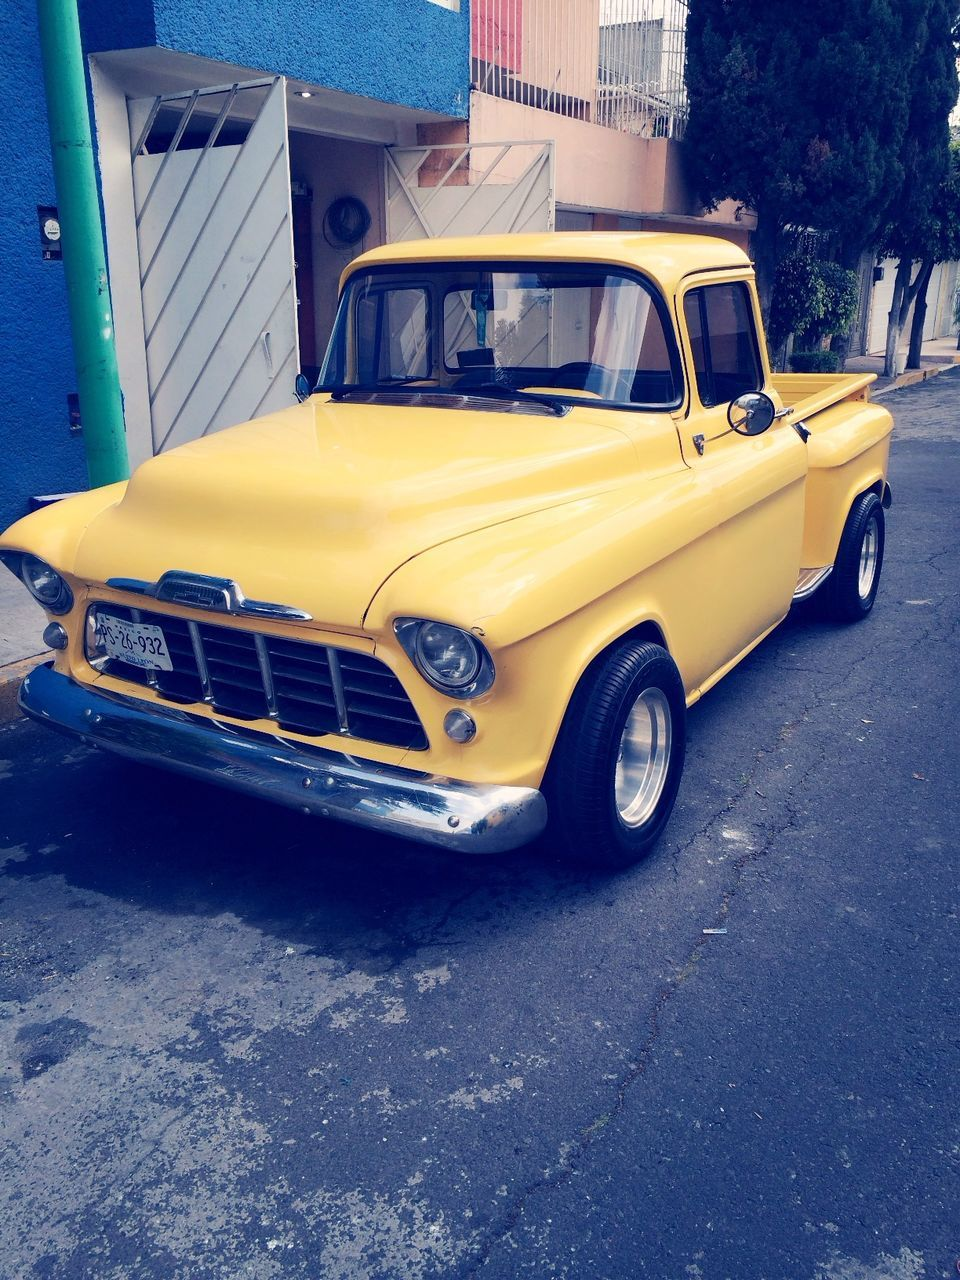 yellow, car, transportation, taxi, yellow taxi, mode of transport, retro styled, old-fashioned, outdoors, no people, day